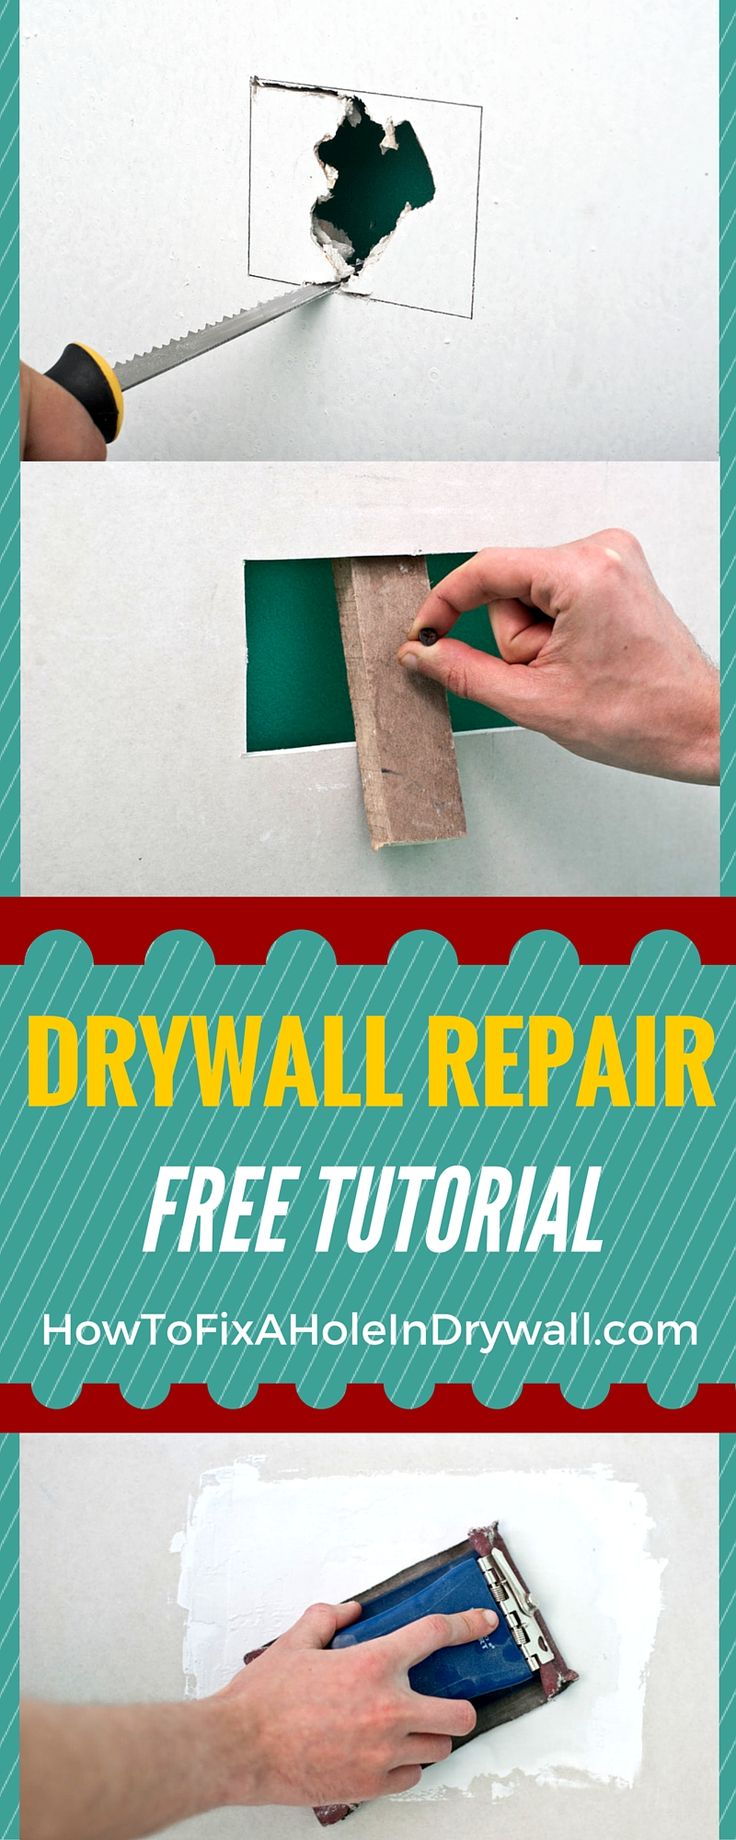 How to fix a hole in drywall - Easy to follow instructions and tips for you to repair drywall holes as a professional in no time! #drywall #repair #fix